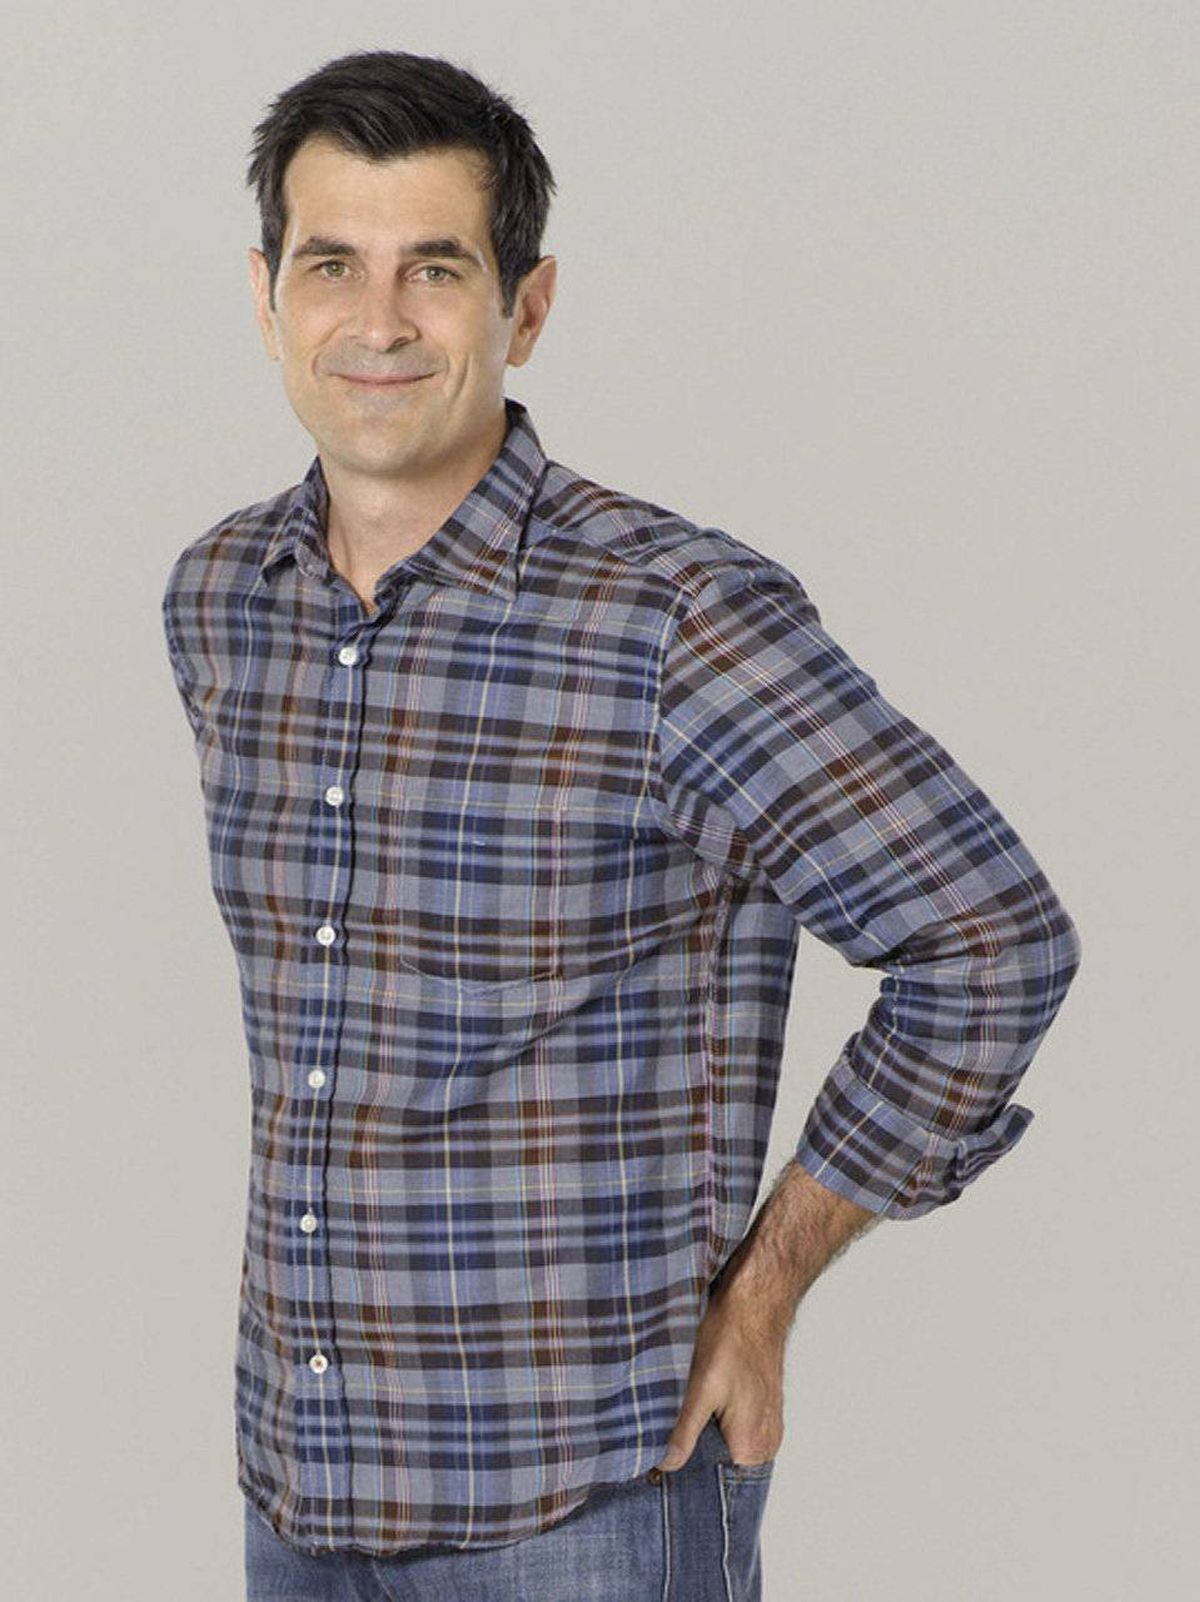 COMEDY Modern Family ABC, CITY-TV, 9 p.m. ET/PT Last year's Emmy-winner for Best Actor in a comedy series, Ty Burrell takes the spotlight in tonight's new episode of TV's sharpest sitcom. The Dunphy clan is in need of a new car, so his character of distracted dad Phil heads off to the local dealership with new pal Andre (Kevin Hart) in tow. Of course Phil makes a wildly spontaneous purchase, which leads to conflict with his wife Claire (Julie Bowen). In other Dunphy news, vainglorious Jay (Ed O'Neill) preps trophy wife Gloria (Sofia Vergara) for his upcoming high-school reunion, while Cam (Eric Stonestreet) and Mitchell (Jesse Tyler Ferguson) are forced to deal with an wailing inconsolable toddler when Lily loses her beloved stuffed animal.